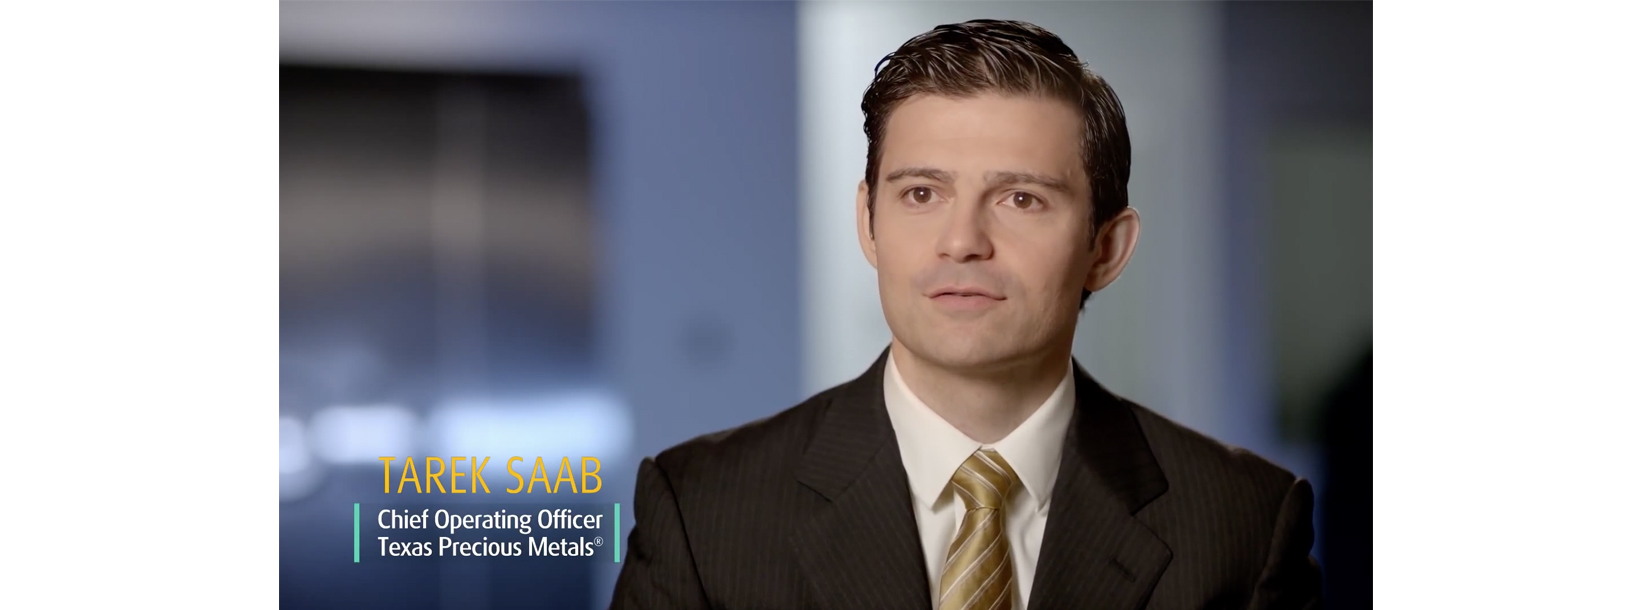 TEXAS PRECIOUS METALS FEATURED IN UPS COMMERCIAL (VIDEO)!